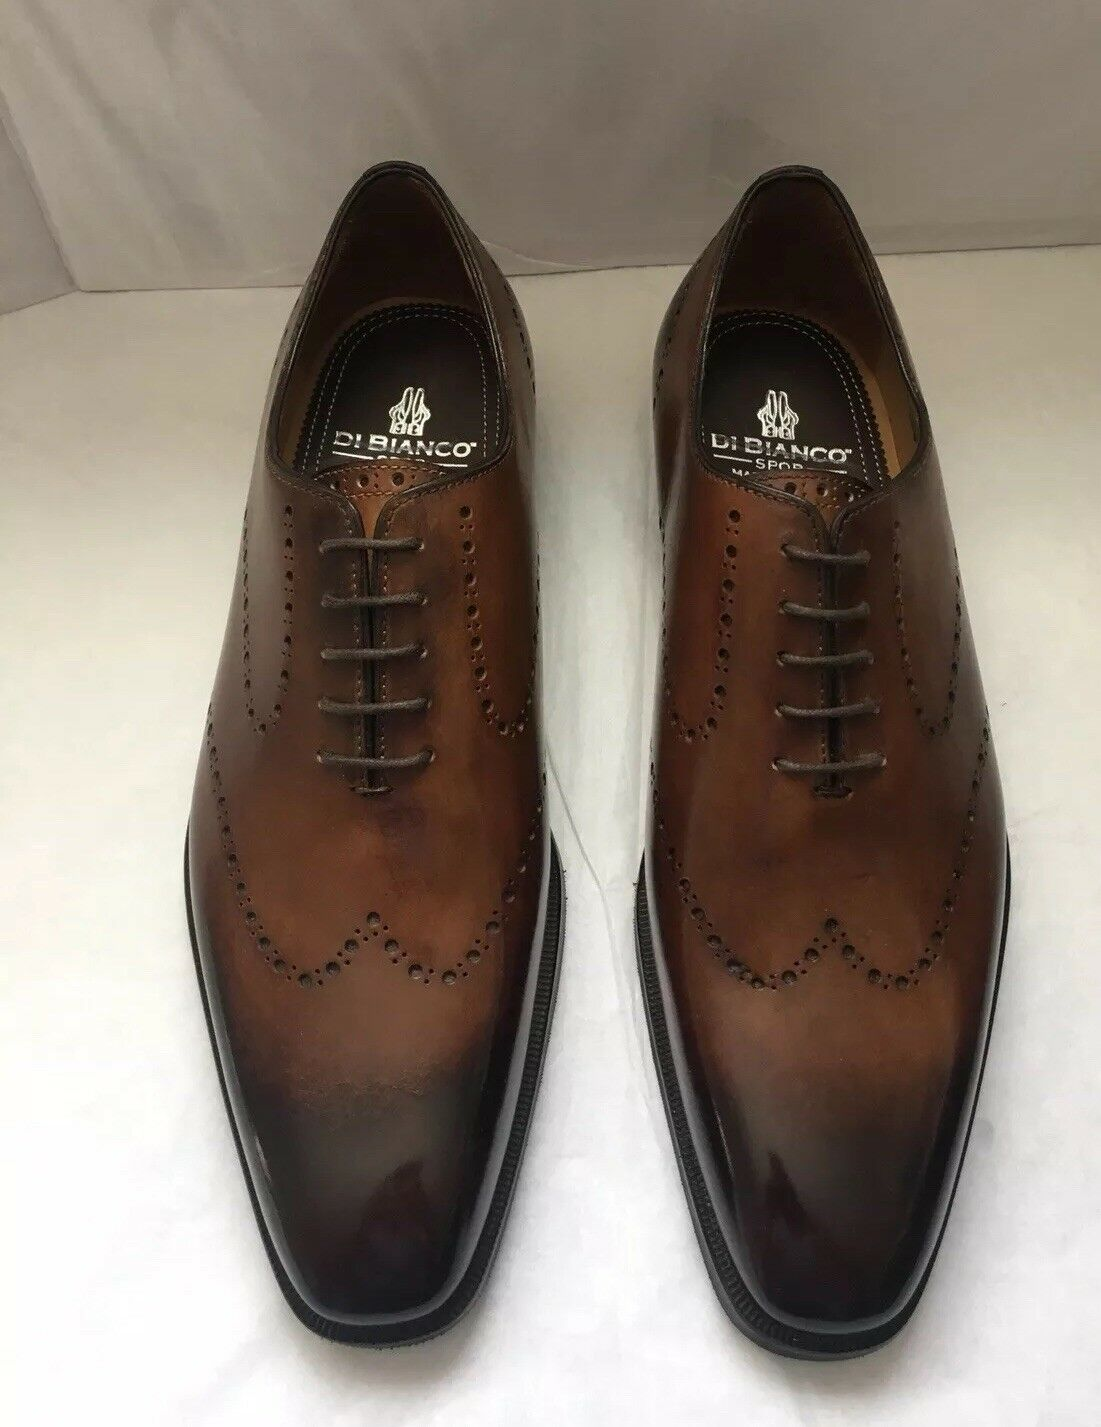 """Di Bianco shoes""""Deco Zenzero"""" Men's Wingtip Burnished Loafer shoes Size 8.5"""